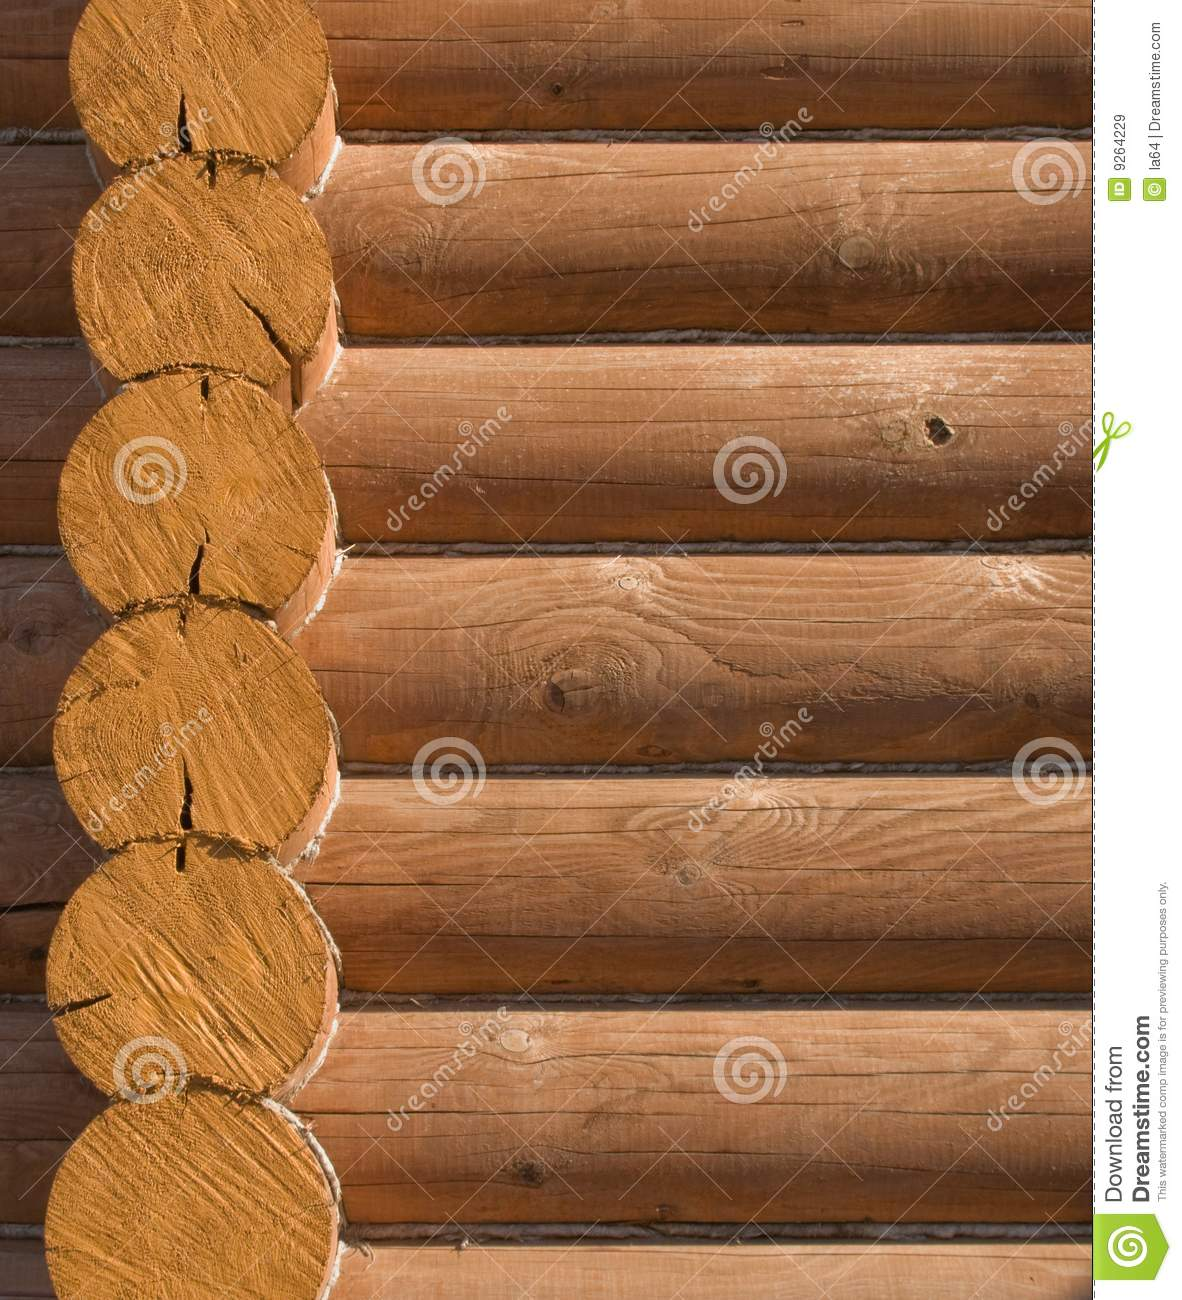 The building structure home interior royalty free stock for 5 structural types of log homes